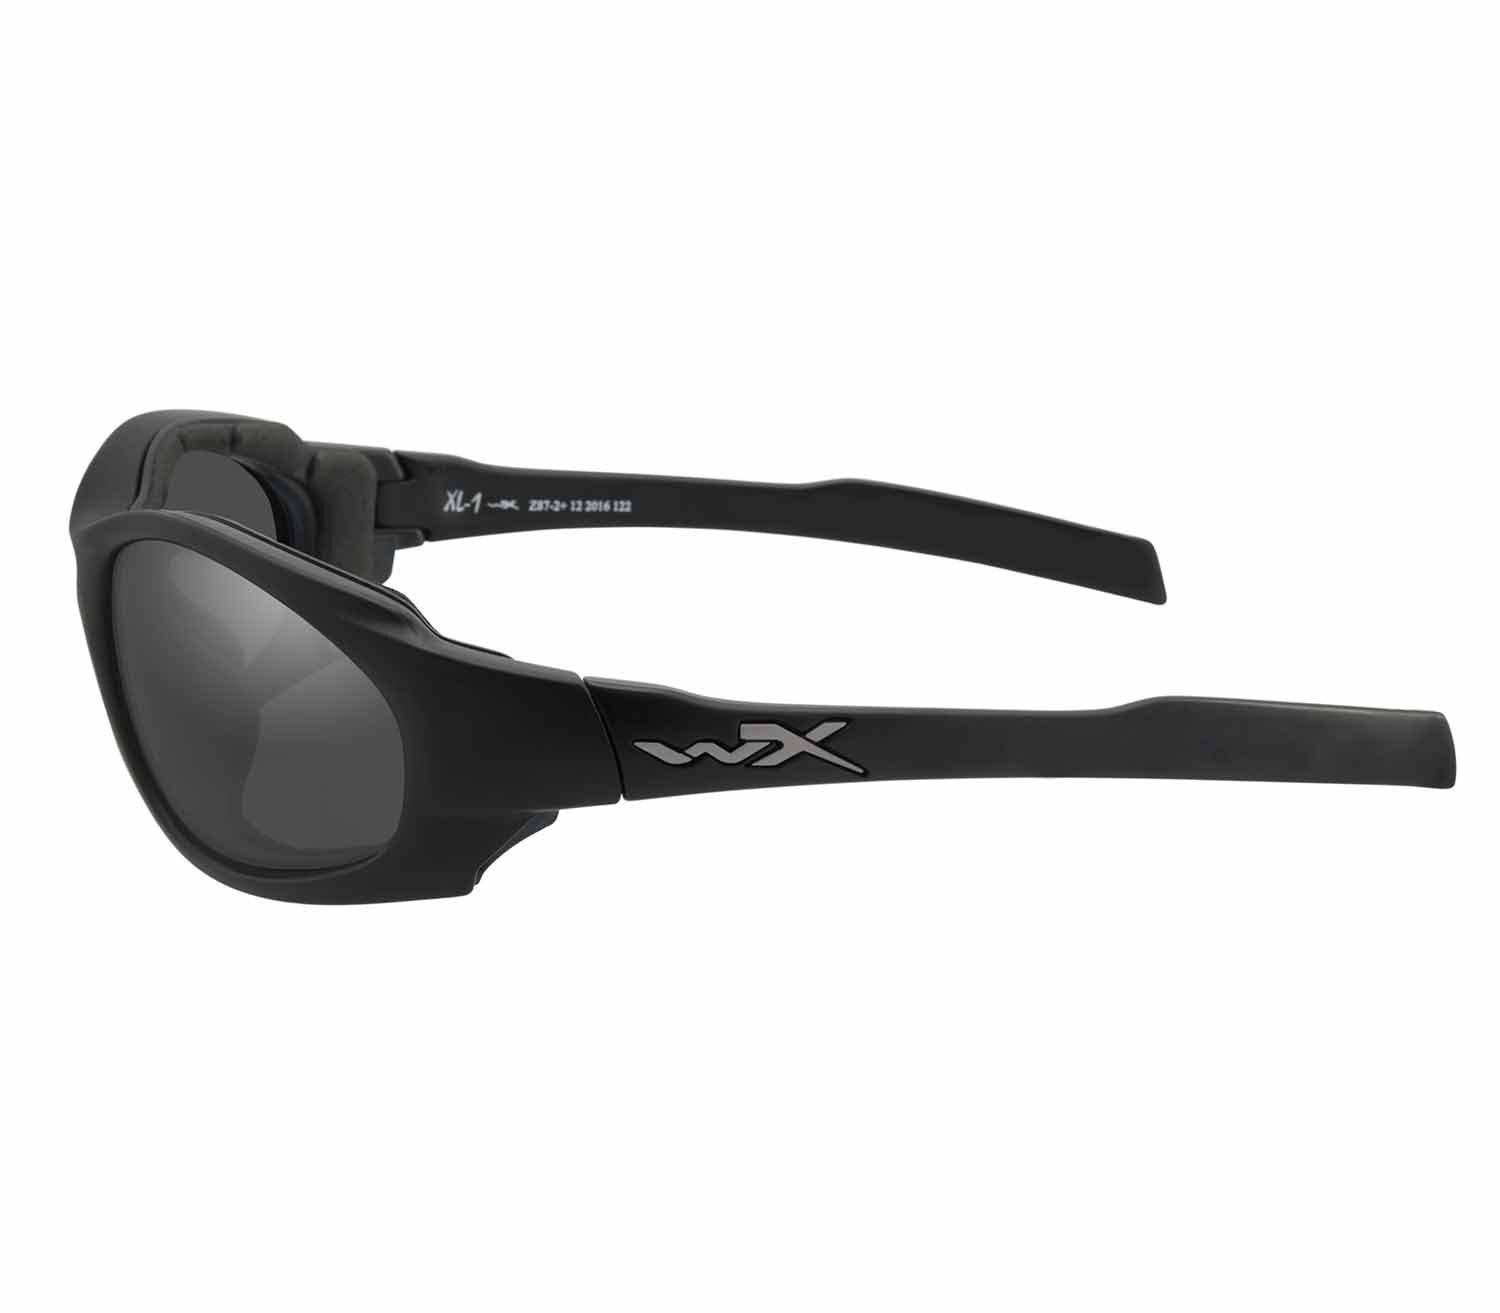 Gafas Wiley X XL-1 AD COMM lateral